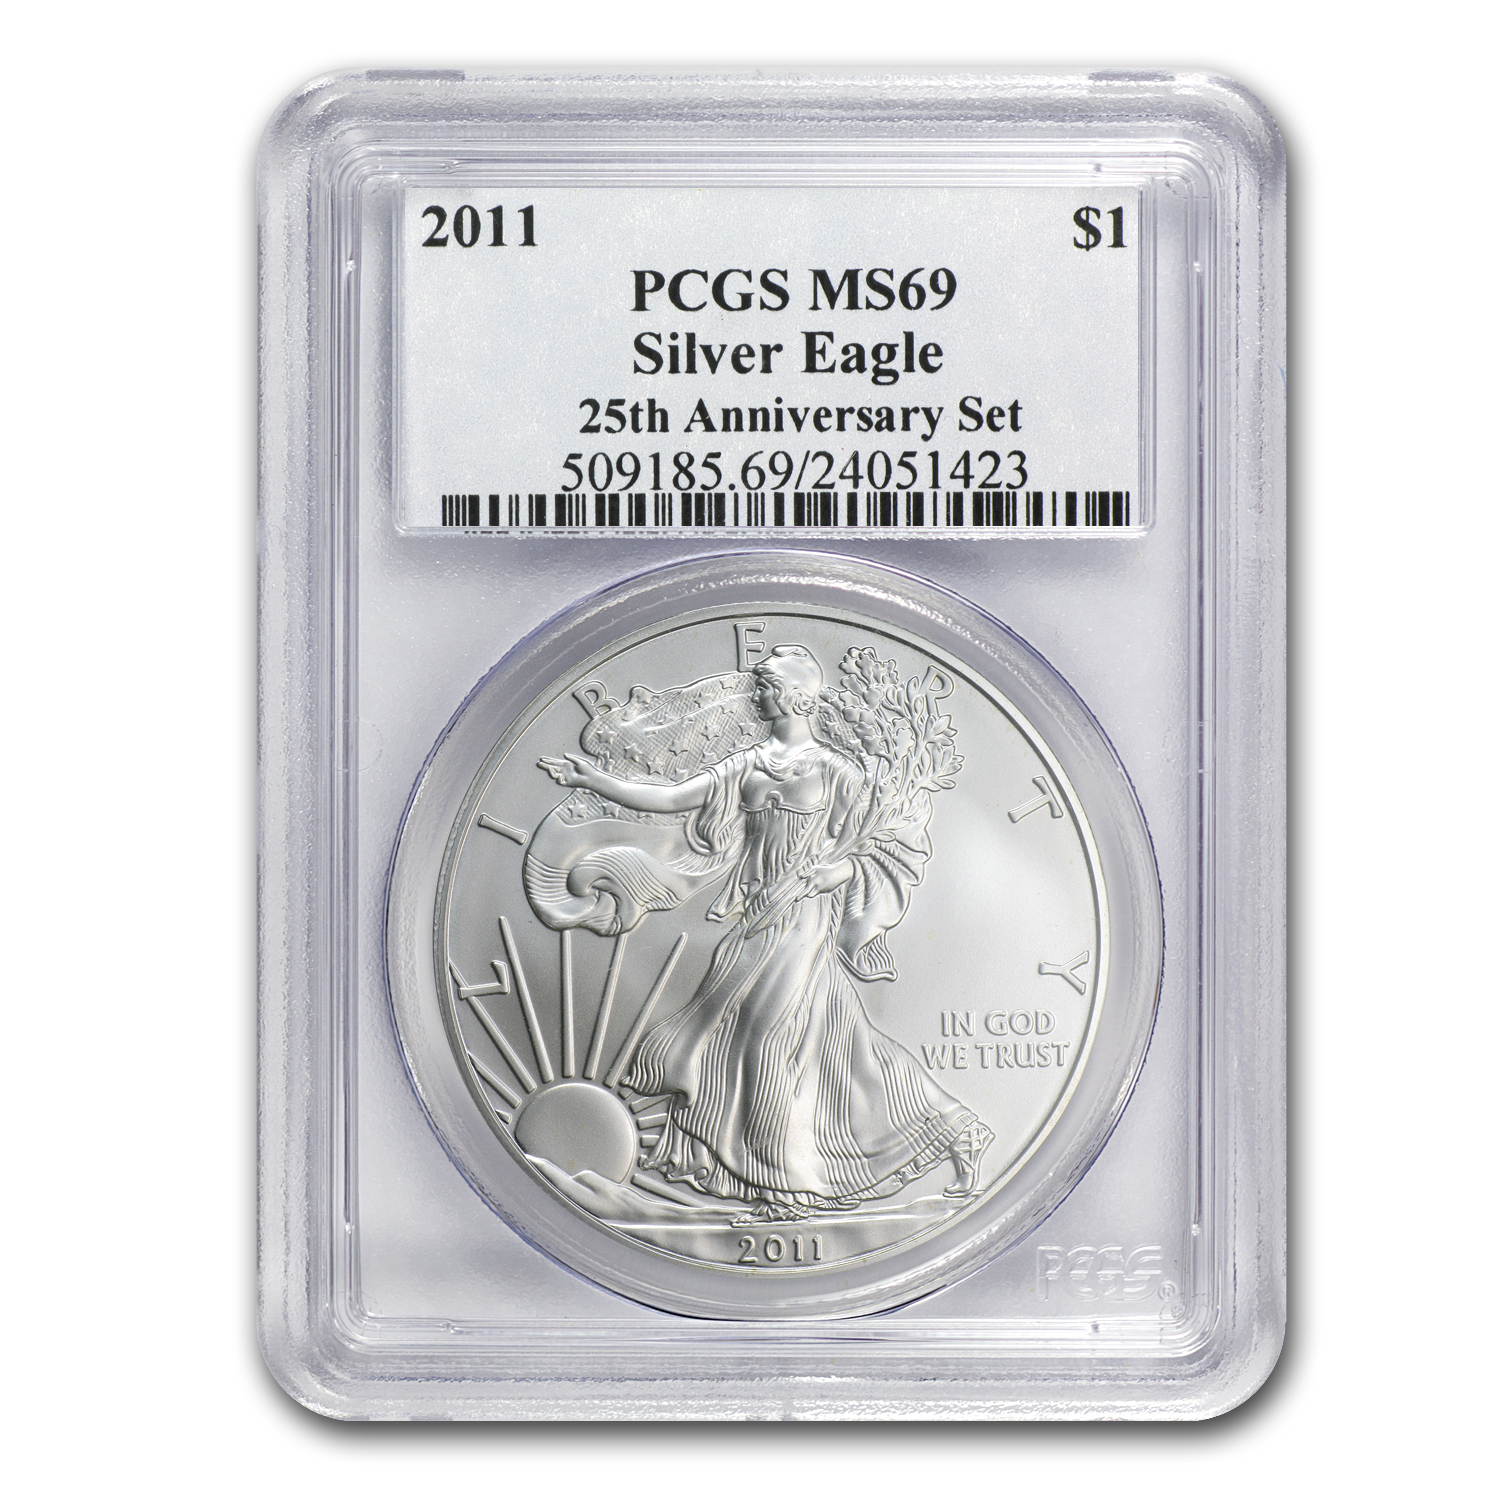 2011 Silver Eagle 25th Anniversary MS-69 PCGS